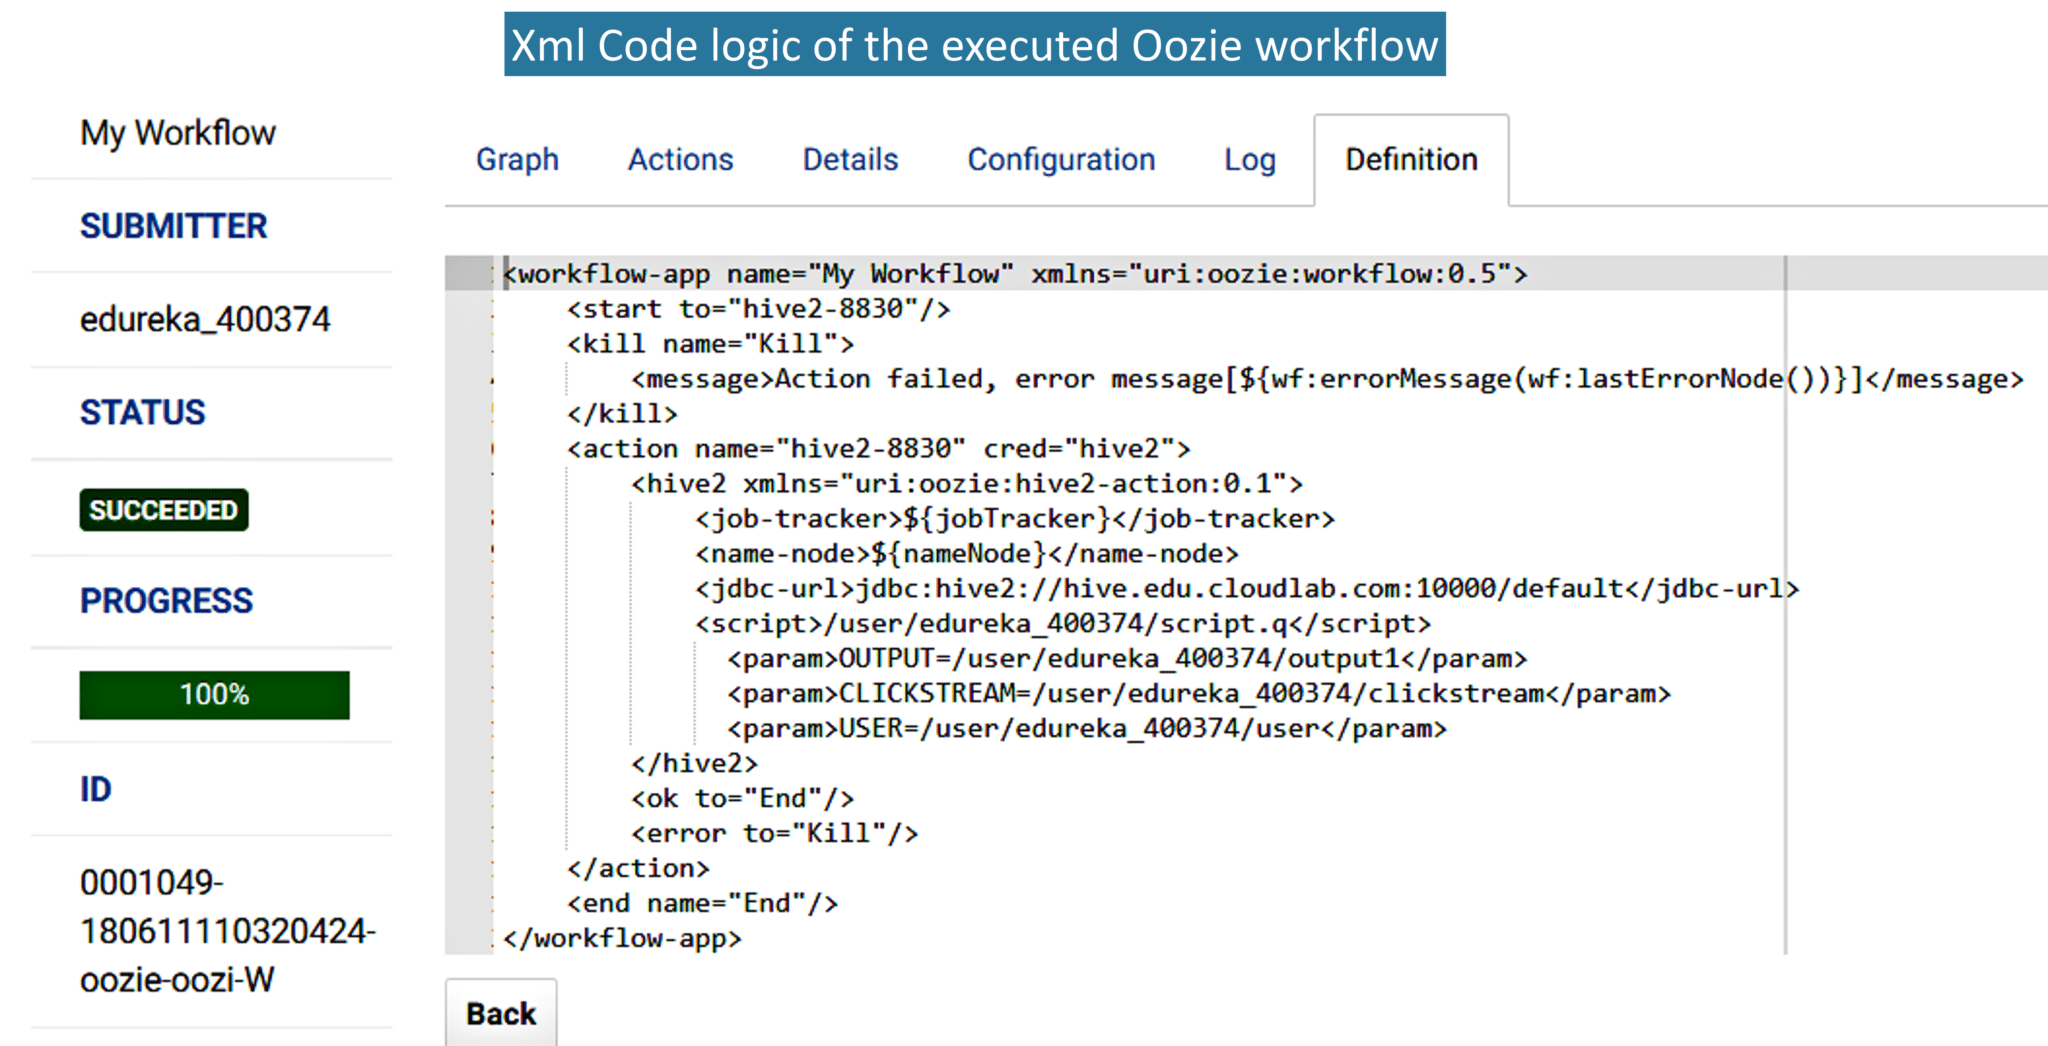 Fig: XML code of the oozie workflow